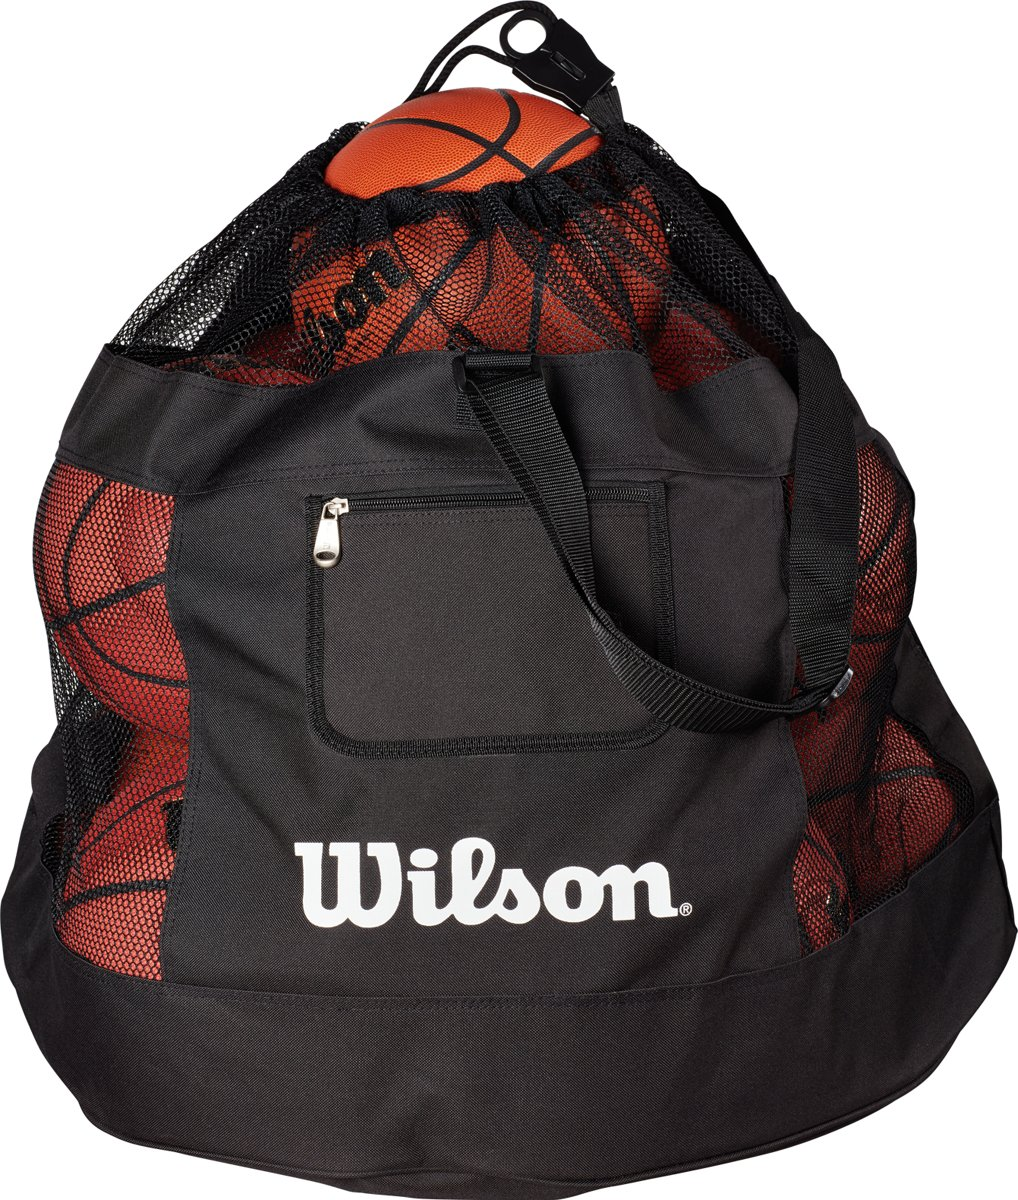 Wilson All Sports - Basketbaltas - Zwart